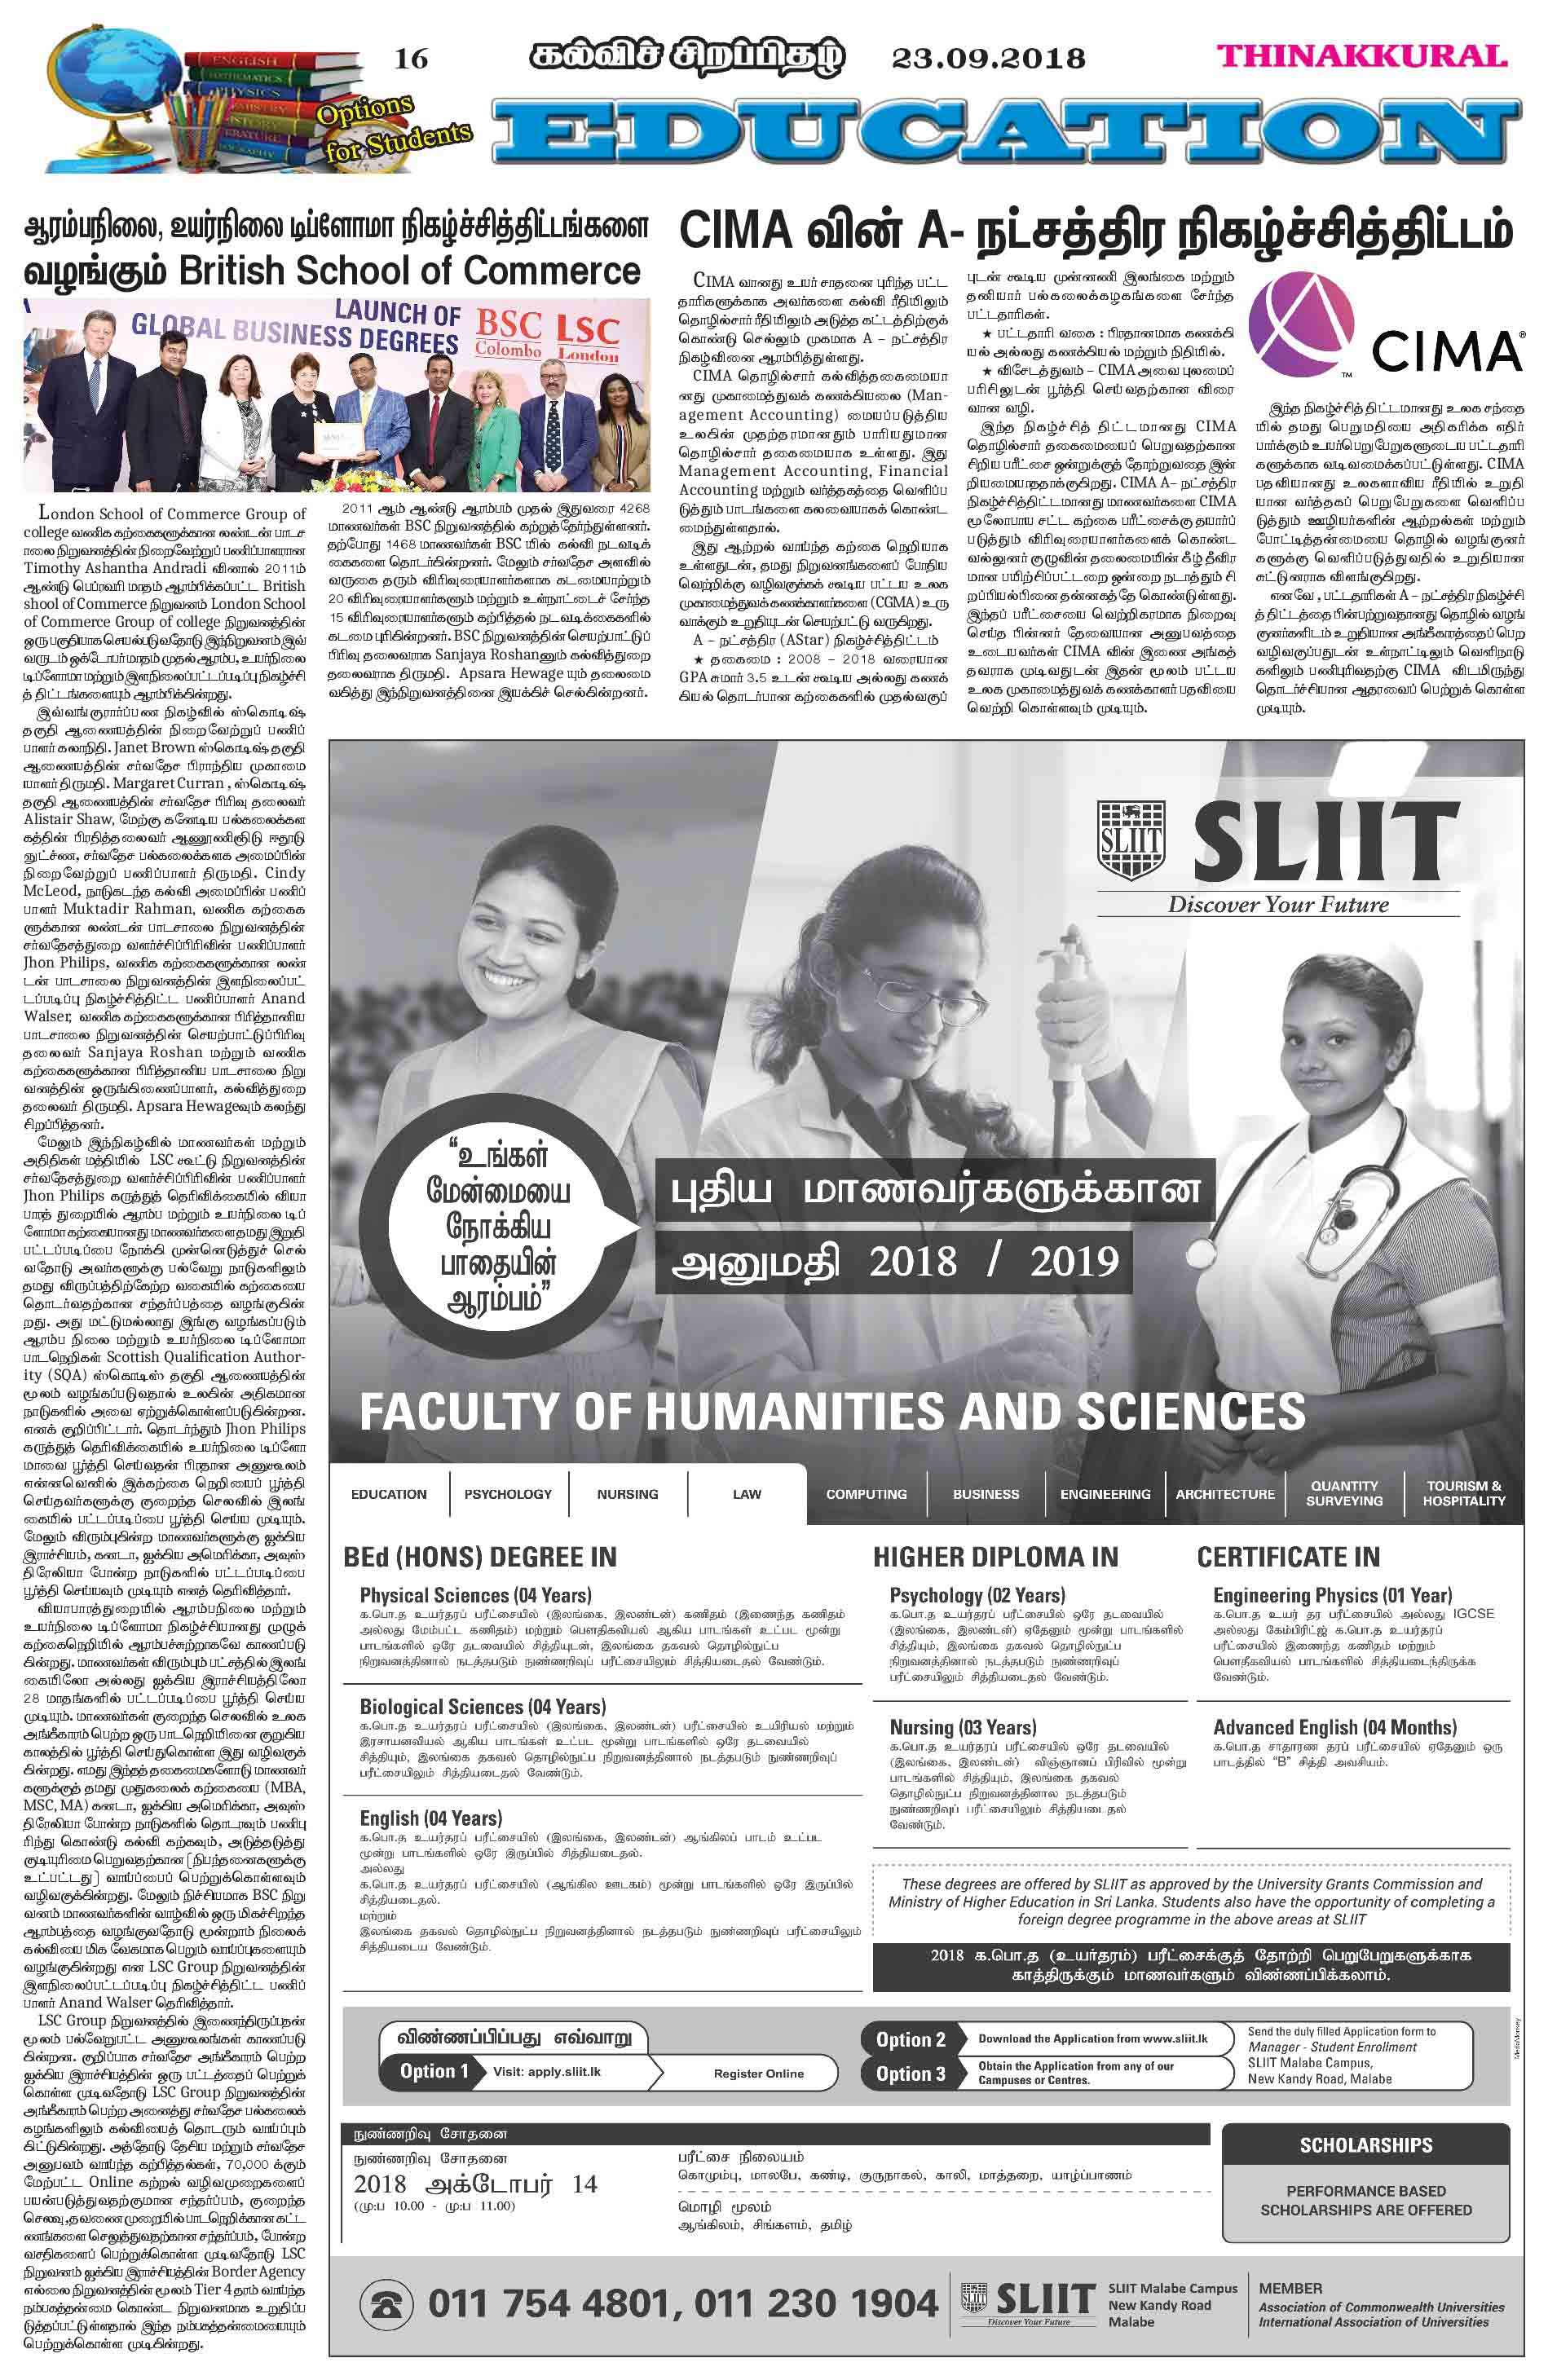 Faculty-of-Humanities-and-Sciences-Advertisements